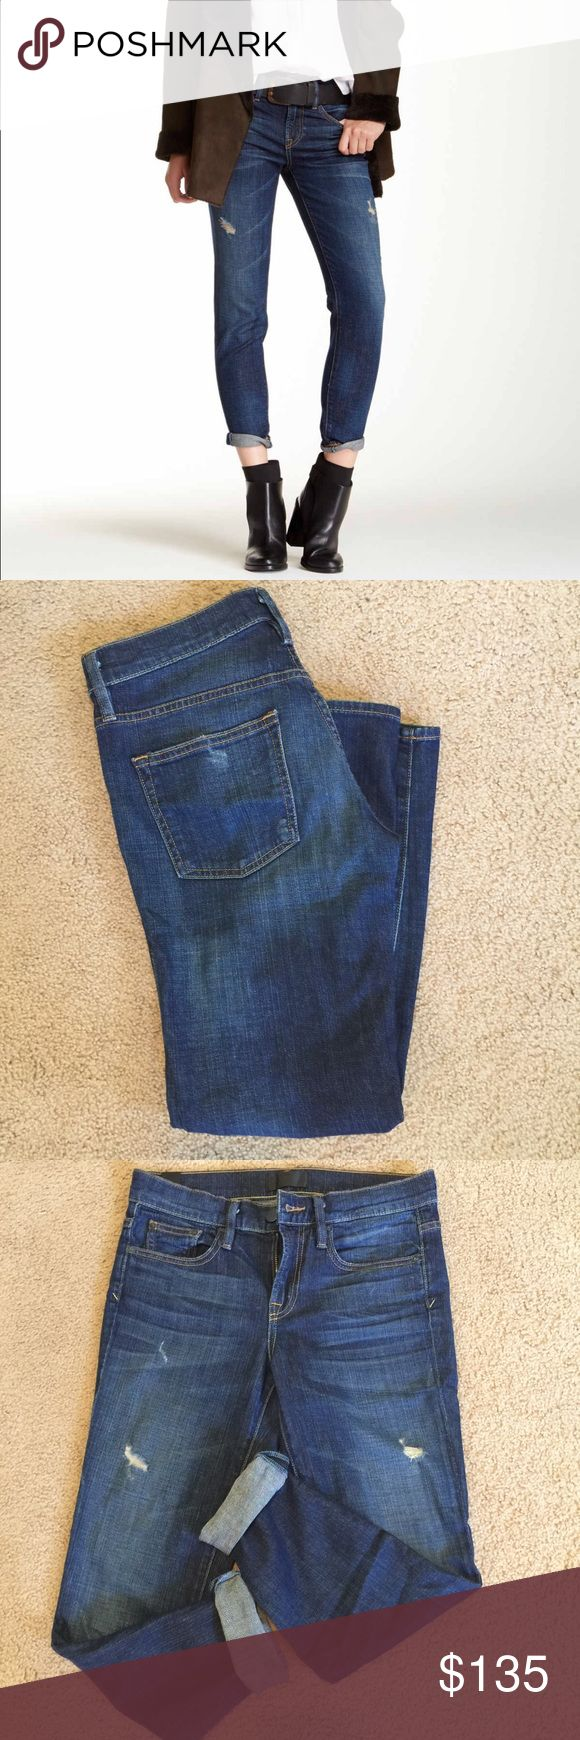 Mason Relaxed Rolled Jean by VINCE. NO FLAWS, no signs of wear! Very cute boyfriend style jean with distressing. Great for but I have TOO many boyfriend jeans and am whittling down. Time for a new home for these :) Vince Jeans Boyfriend